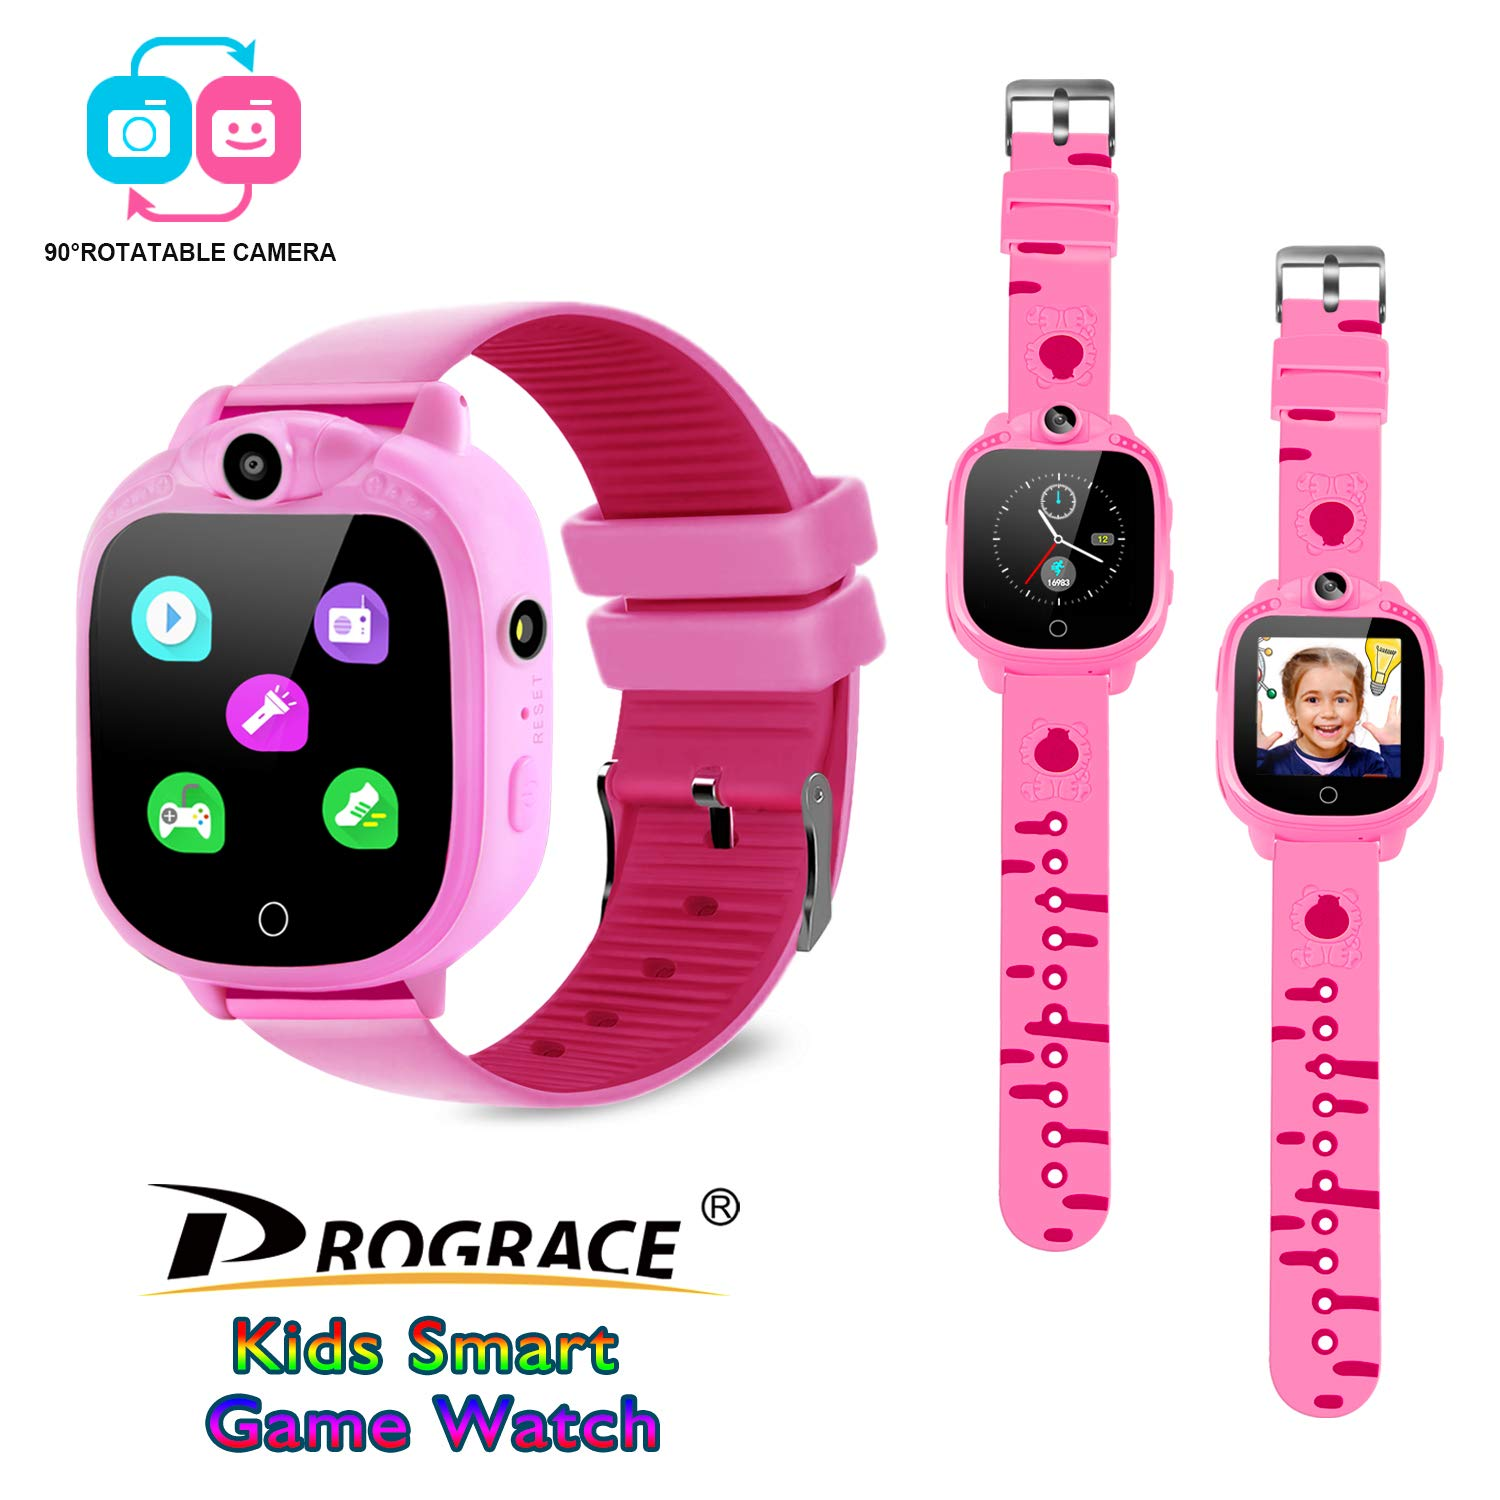 PROGRACE Kids Smart Watch with 90°Rotatable Camera Smartwatch Touch Screen Kids Watch Music Pedometer Flashlight FM Radio Games Digital Wrist Watch for Girls Electronic Learning Toys by PROGRACE